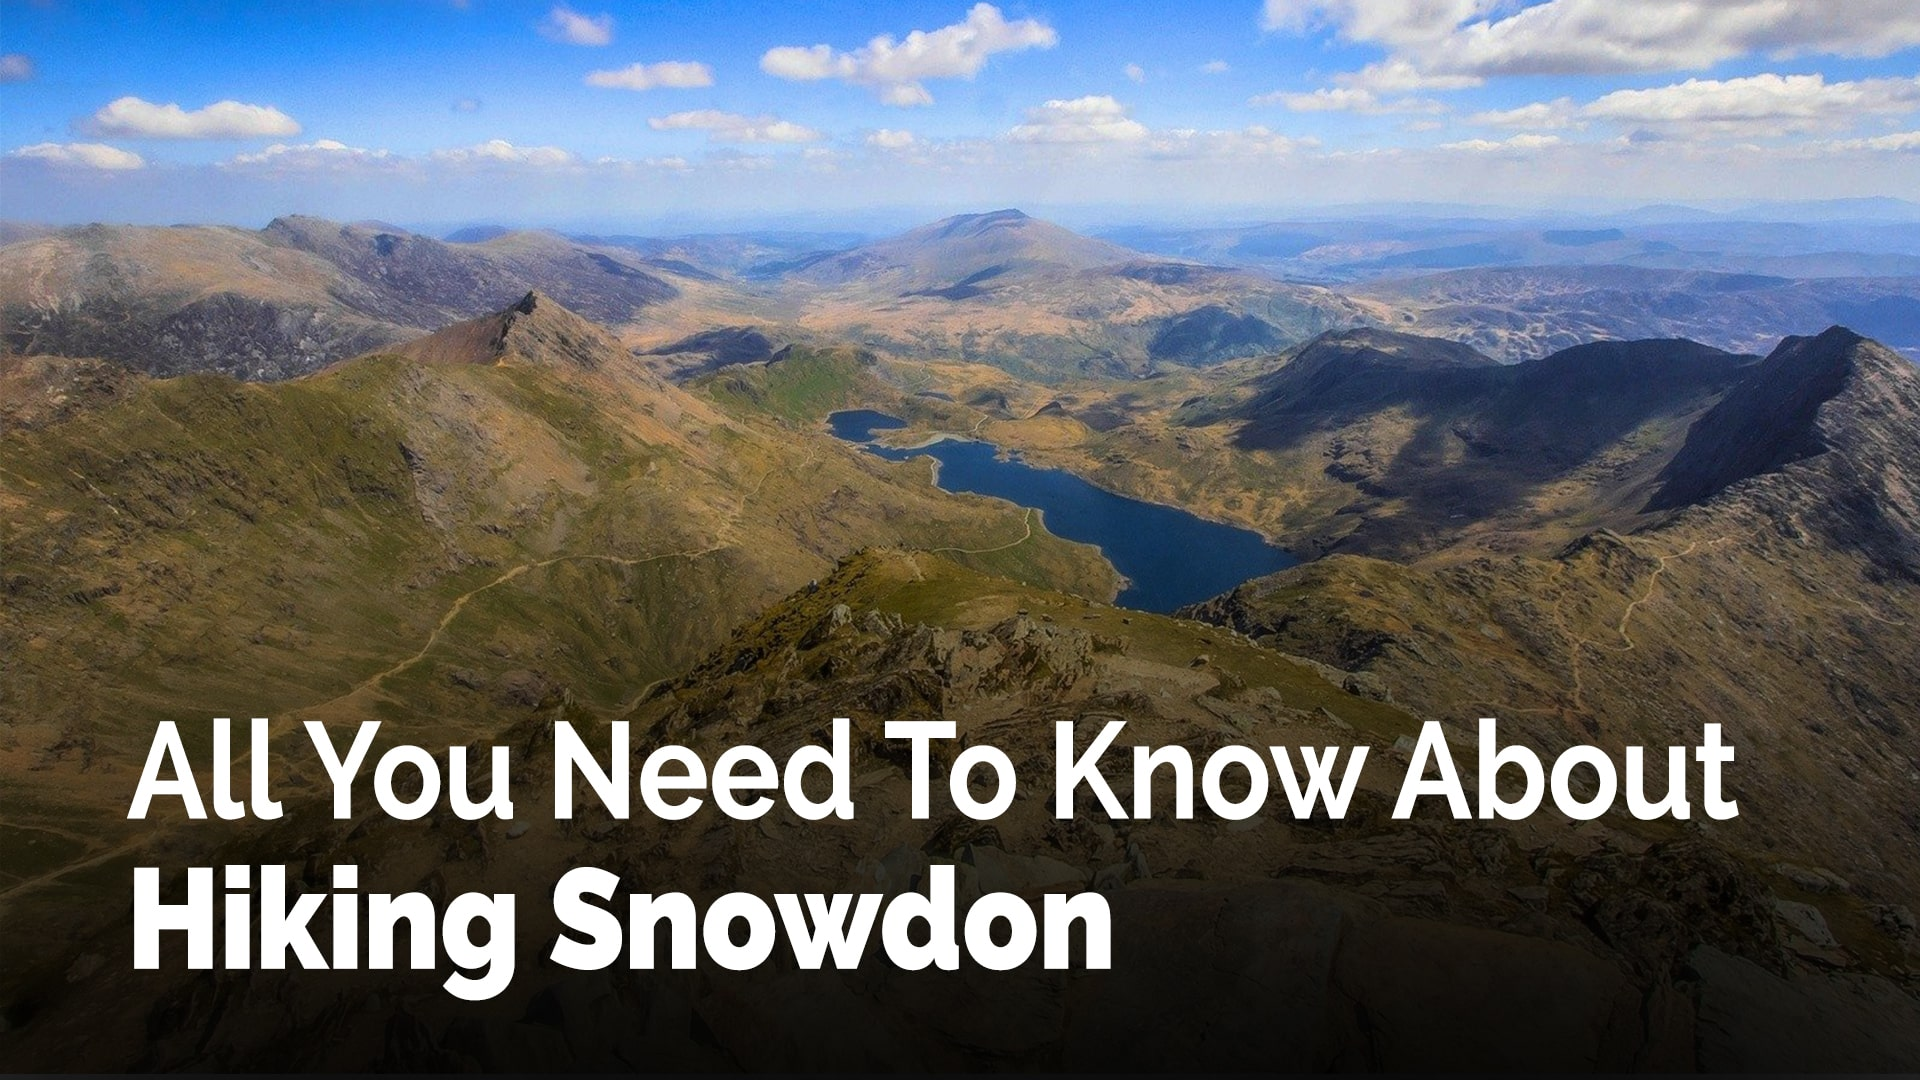 All You Need To Know About Hiking Snowdon